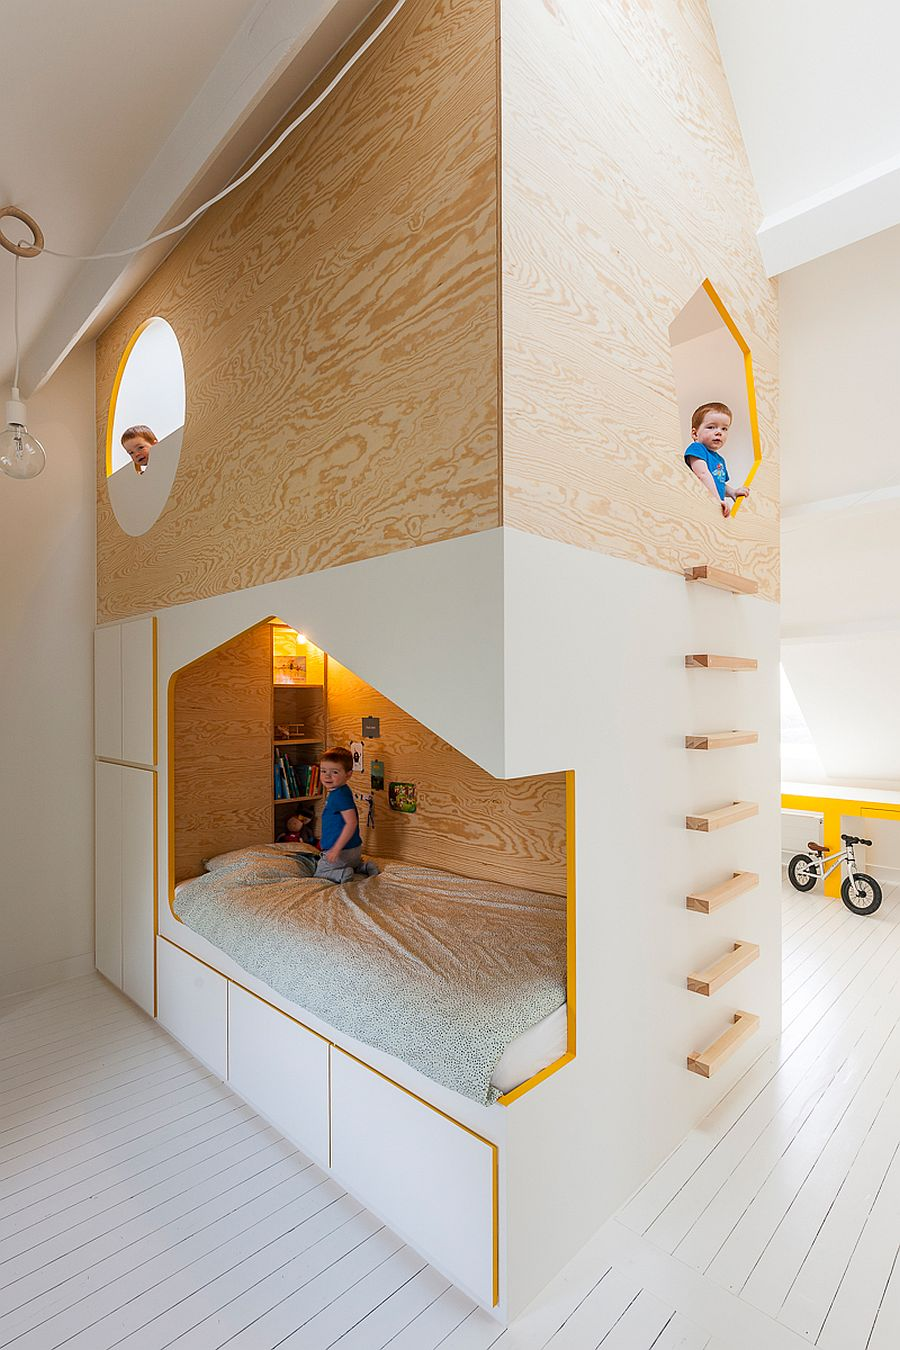 Bespoke-kids-bed-design-with-twin-beds-and-a-loft-playspace